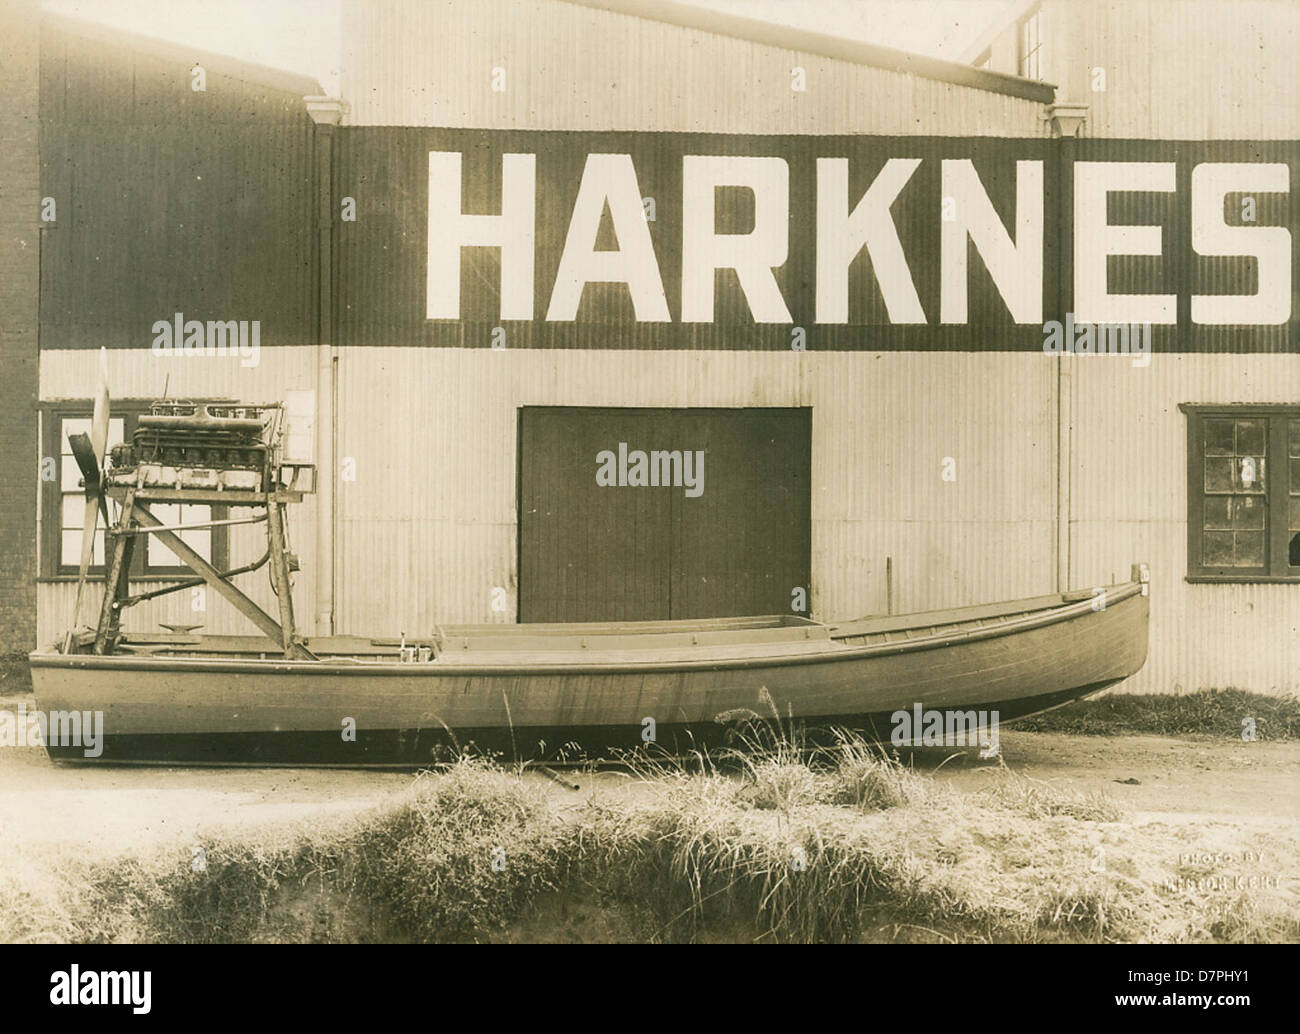 Hydroglider outside the Harkness & Hillier factory, 1928 - Stock Image